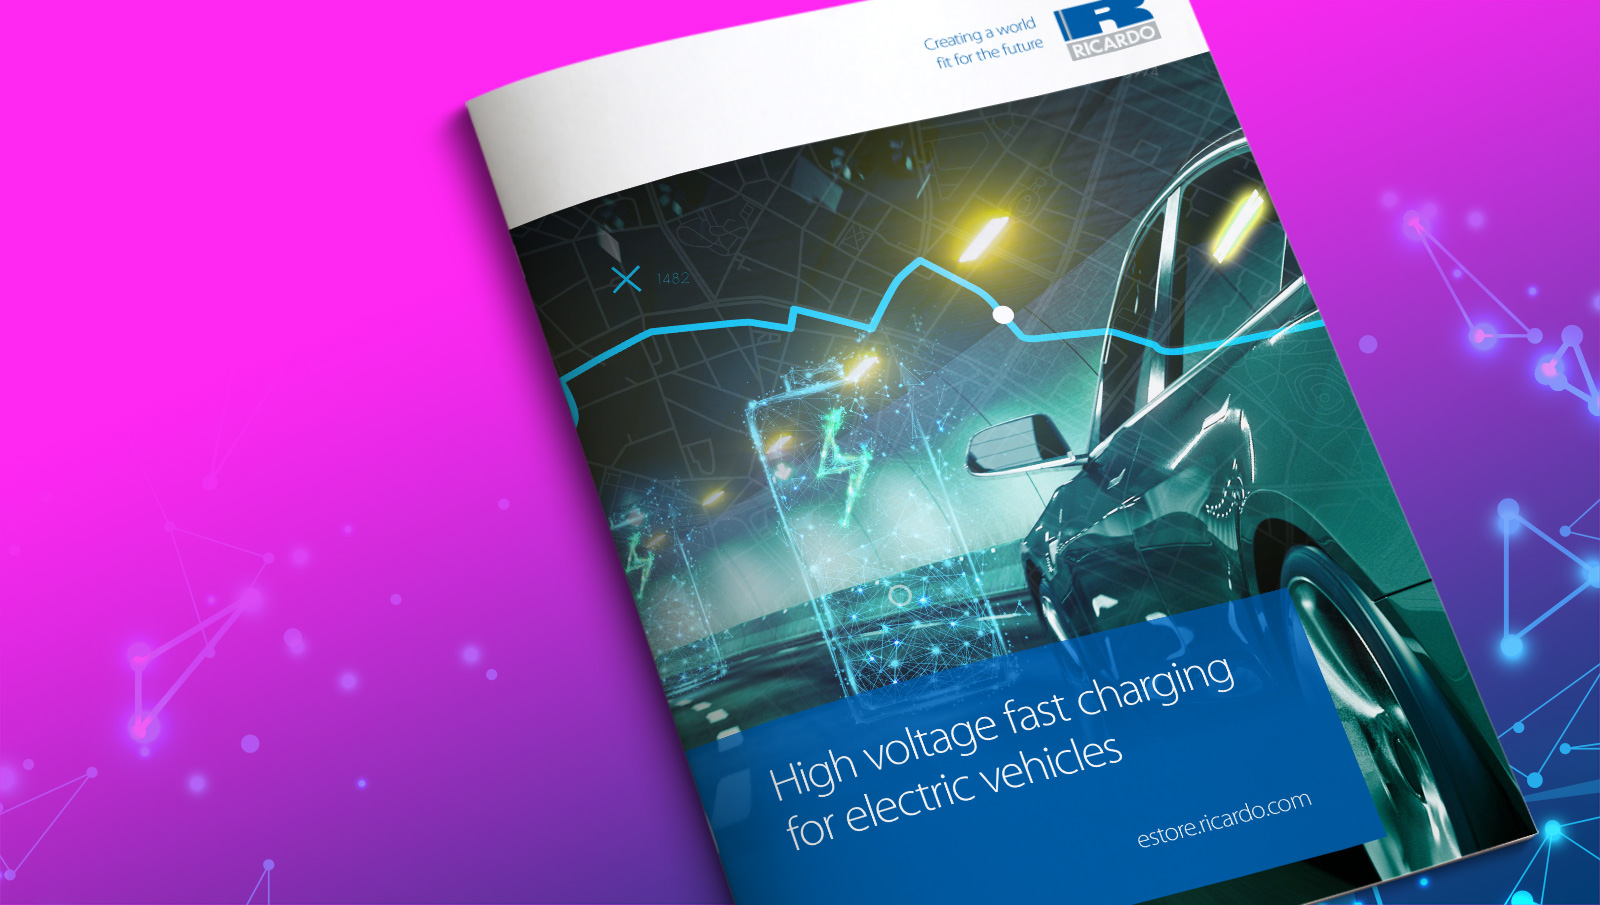 Report: High Voltage and Fast Charging for Electric Vehicles